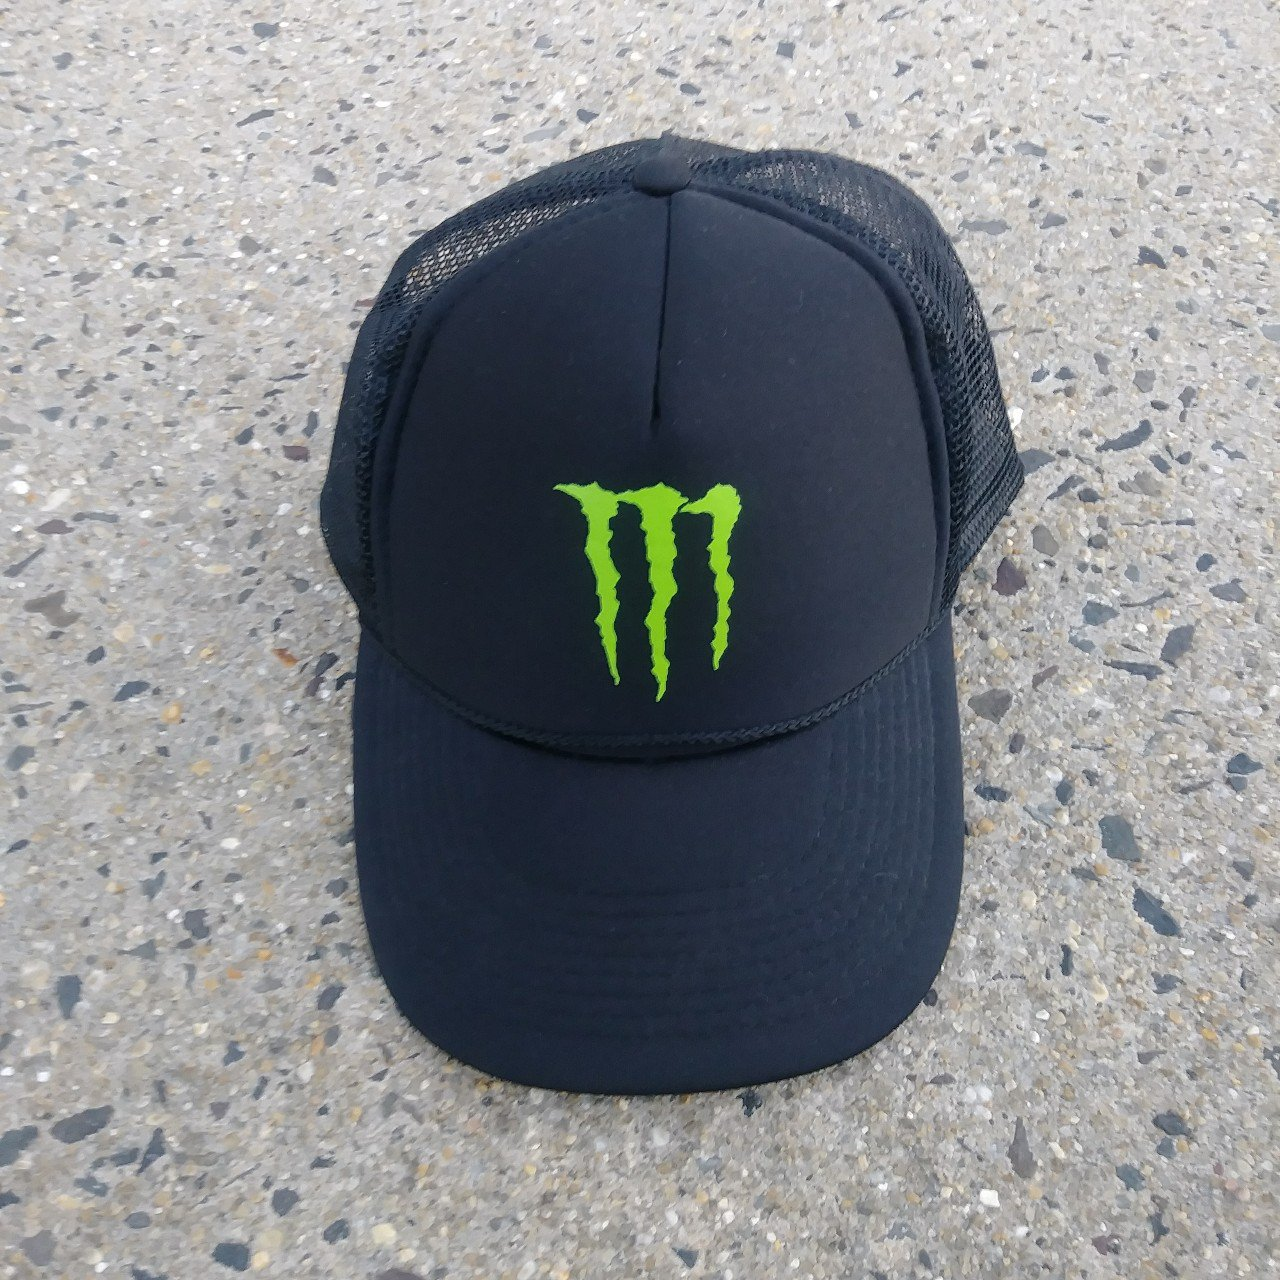 CLASSIC MONSTER ENERGY DRINK TRUCKER CAP ONE SIZE FITS ALL - Depop b4973cd41f8